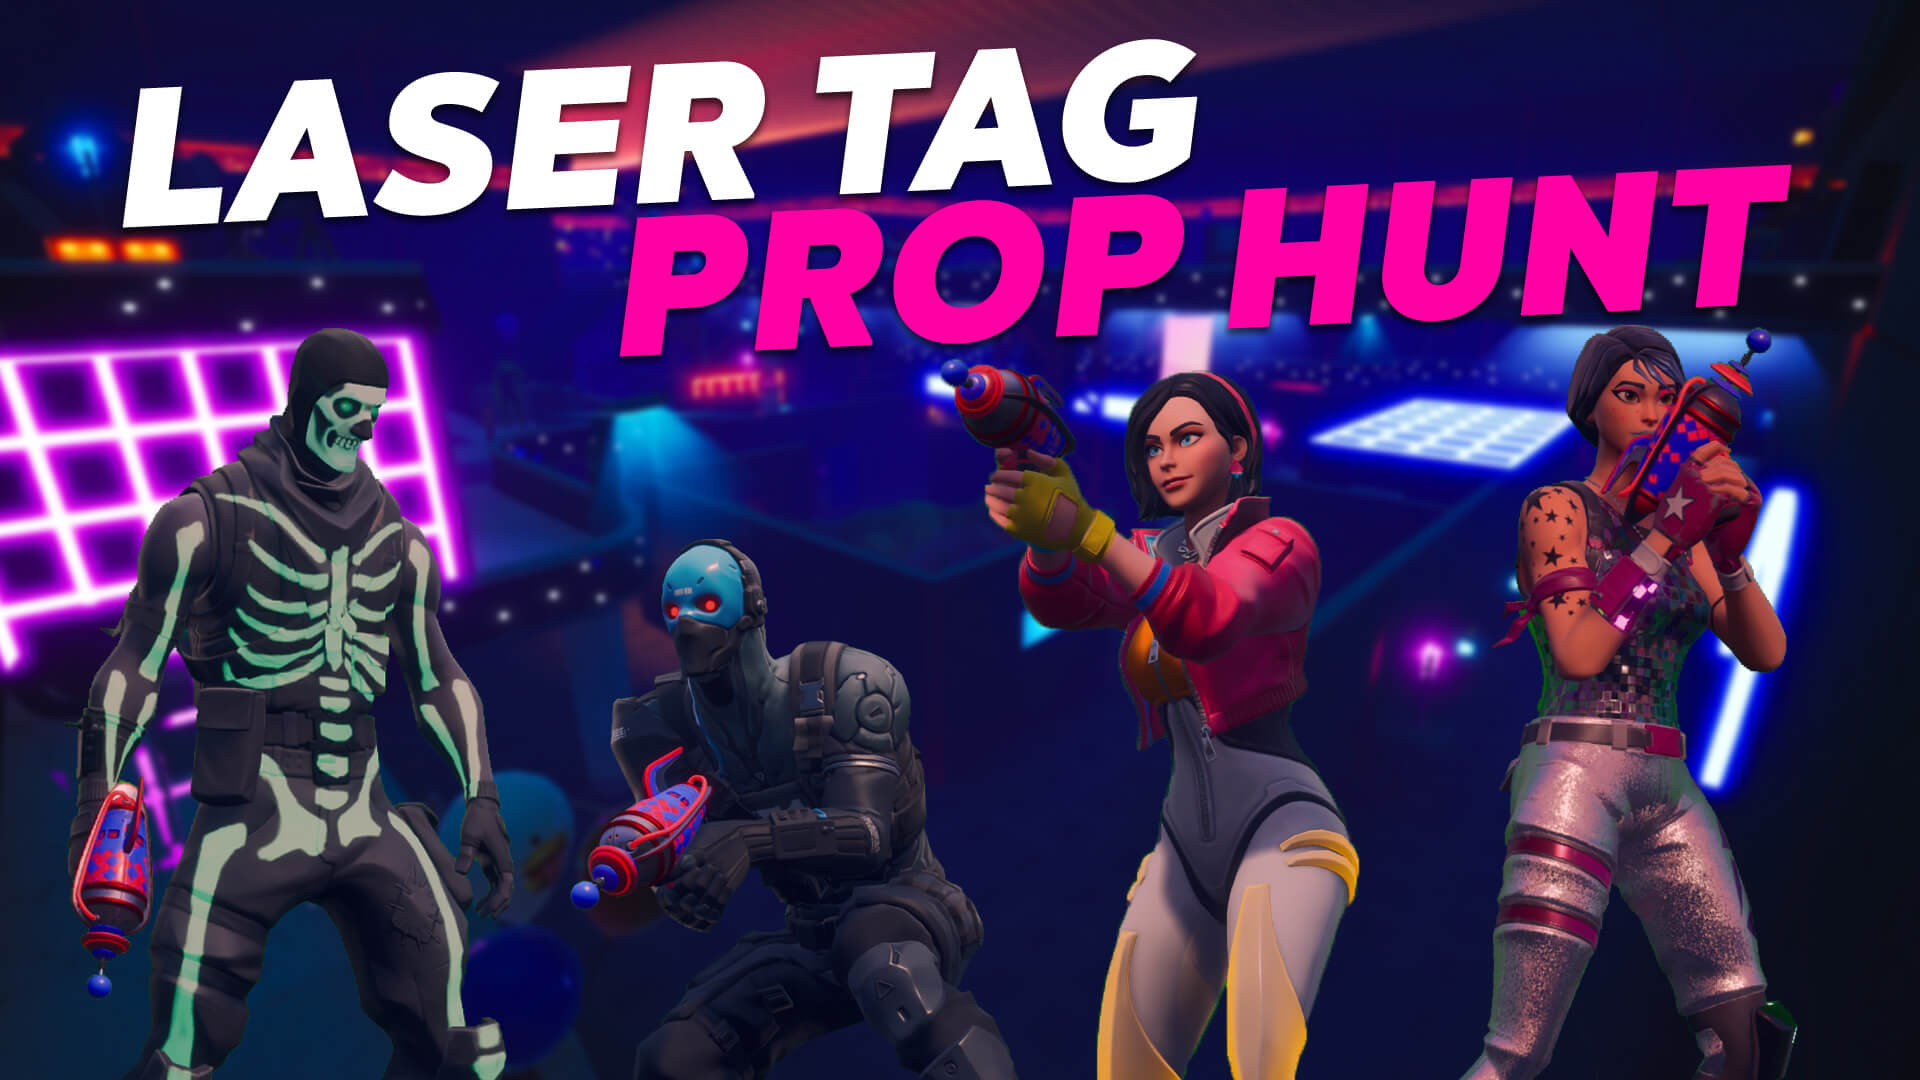 LASER TAG PROP HUNT